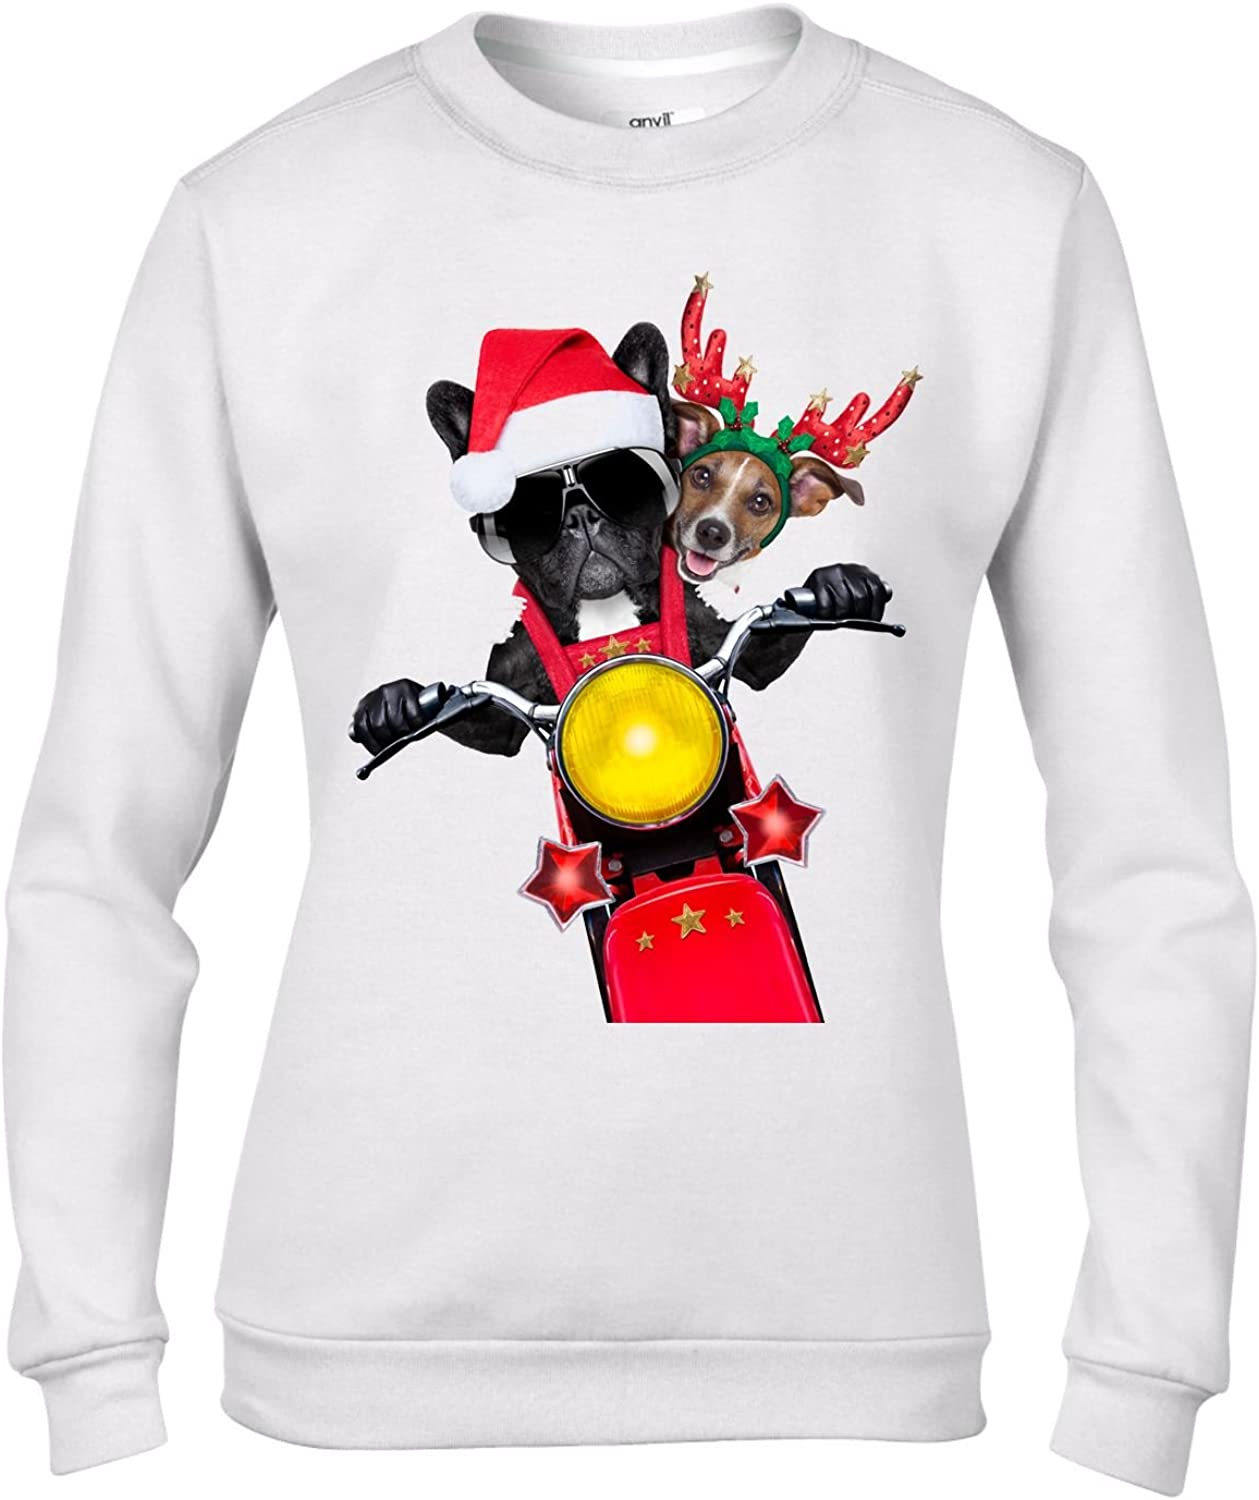 French Bulldog And Jack Russell Santa Claus Women/'s Christmas Jumper Biker Dogs Animals